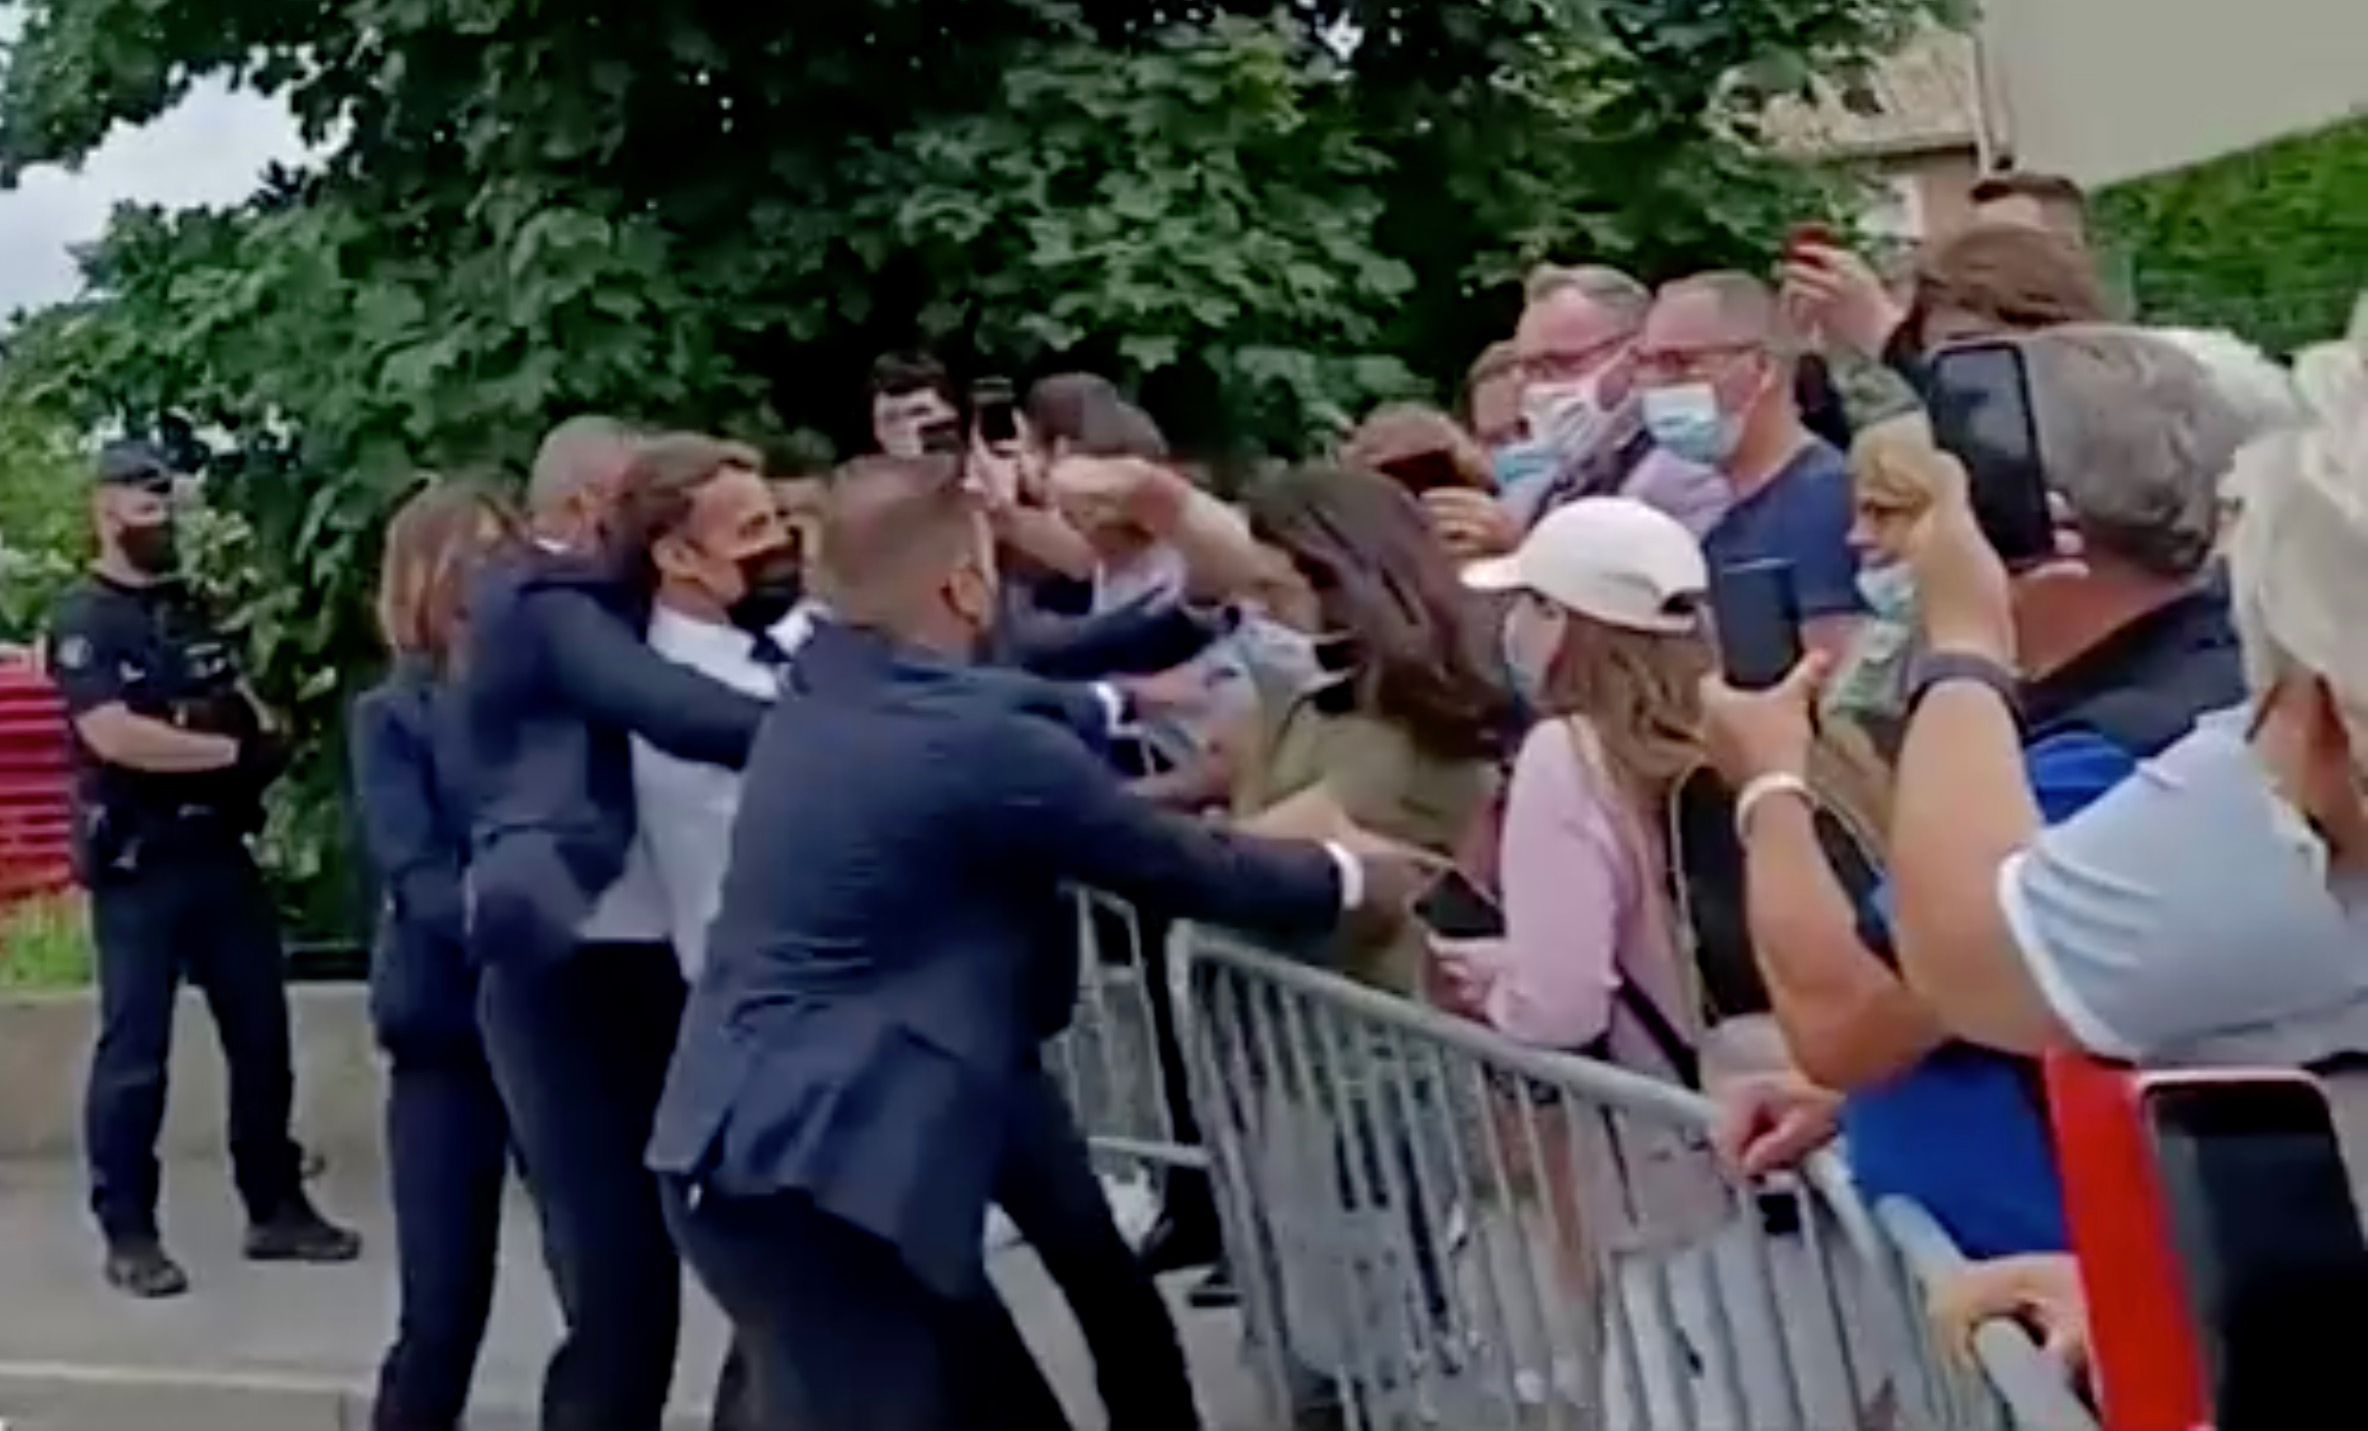 Macron Slapped In The Face In Southern France